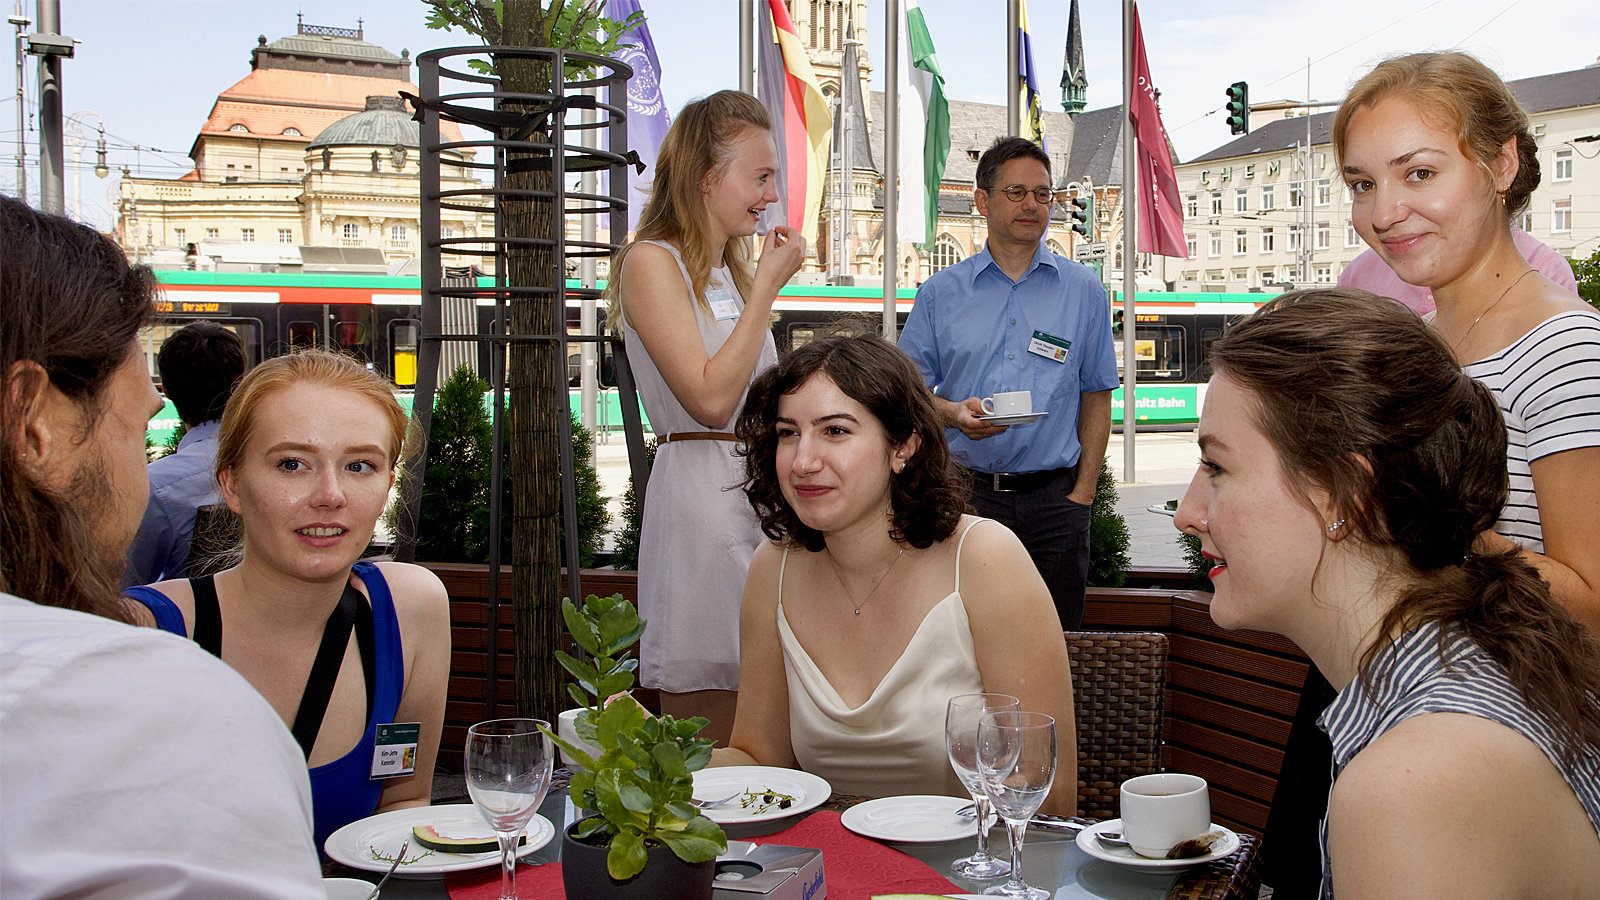 5 young woman talking to each other. The Chemnitz Opera house is in the background.